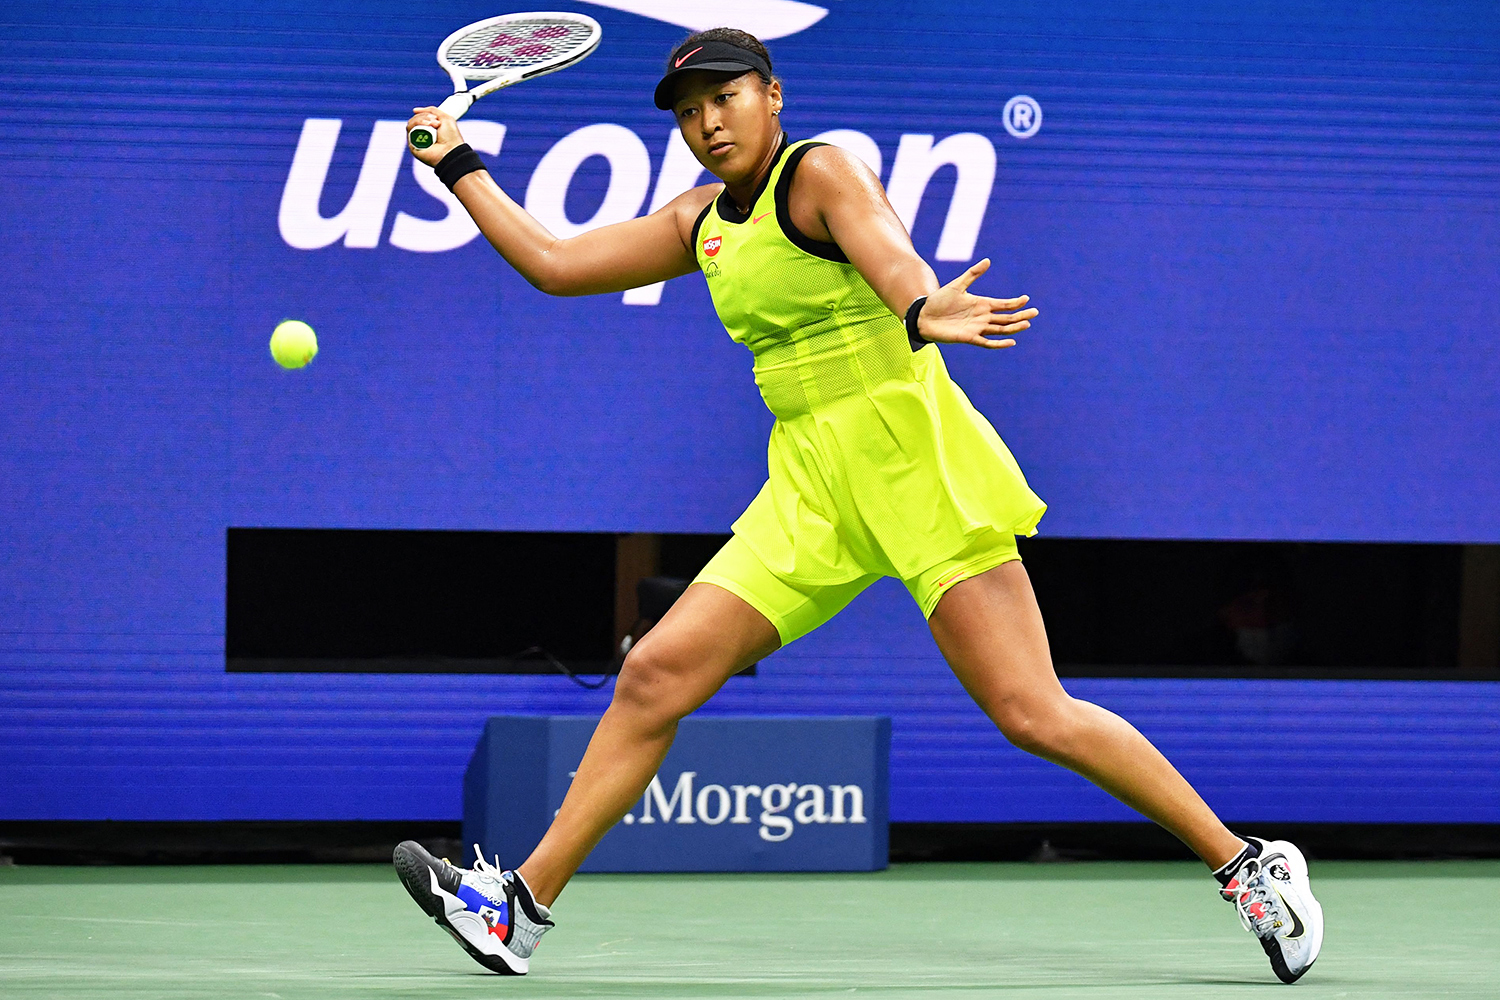 Japan's Naomi Osaka hits a return to Canada's Leylah Fernandez during their 2021 US Open Tennis tournament women's singles third round match at the USTA Billie Jean King National Tennis Center in New York, on September 3, 2021.